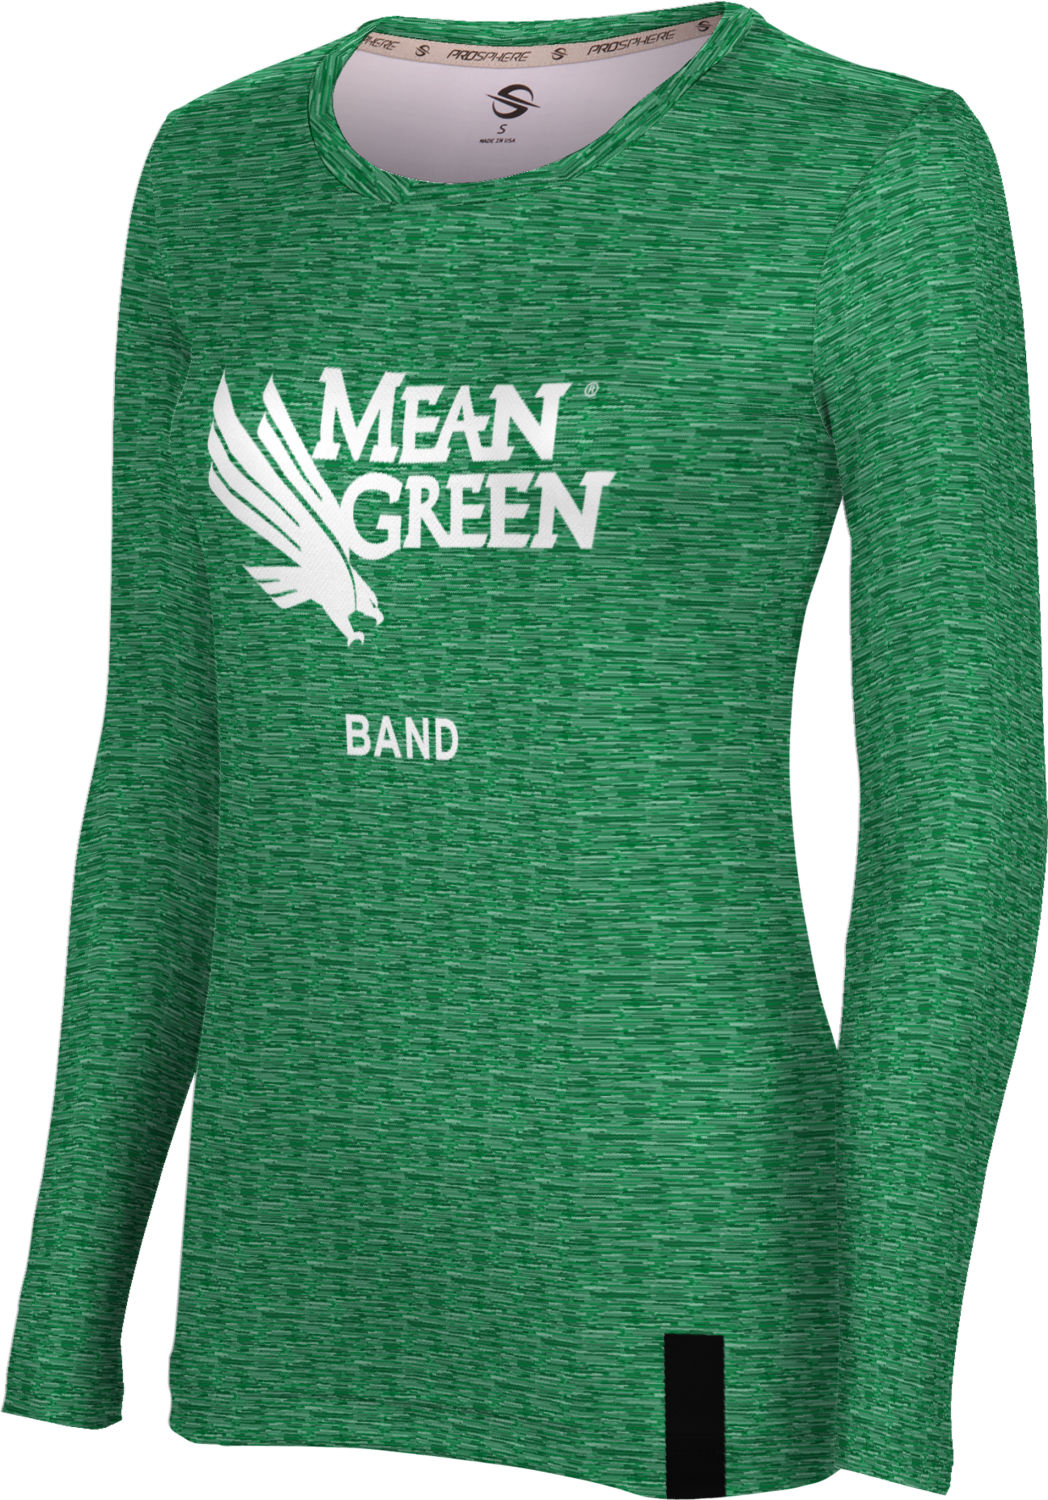 Women's ProSphere Sublimated Long Sleeve Tee - Band